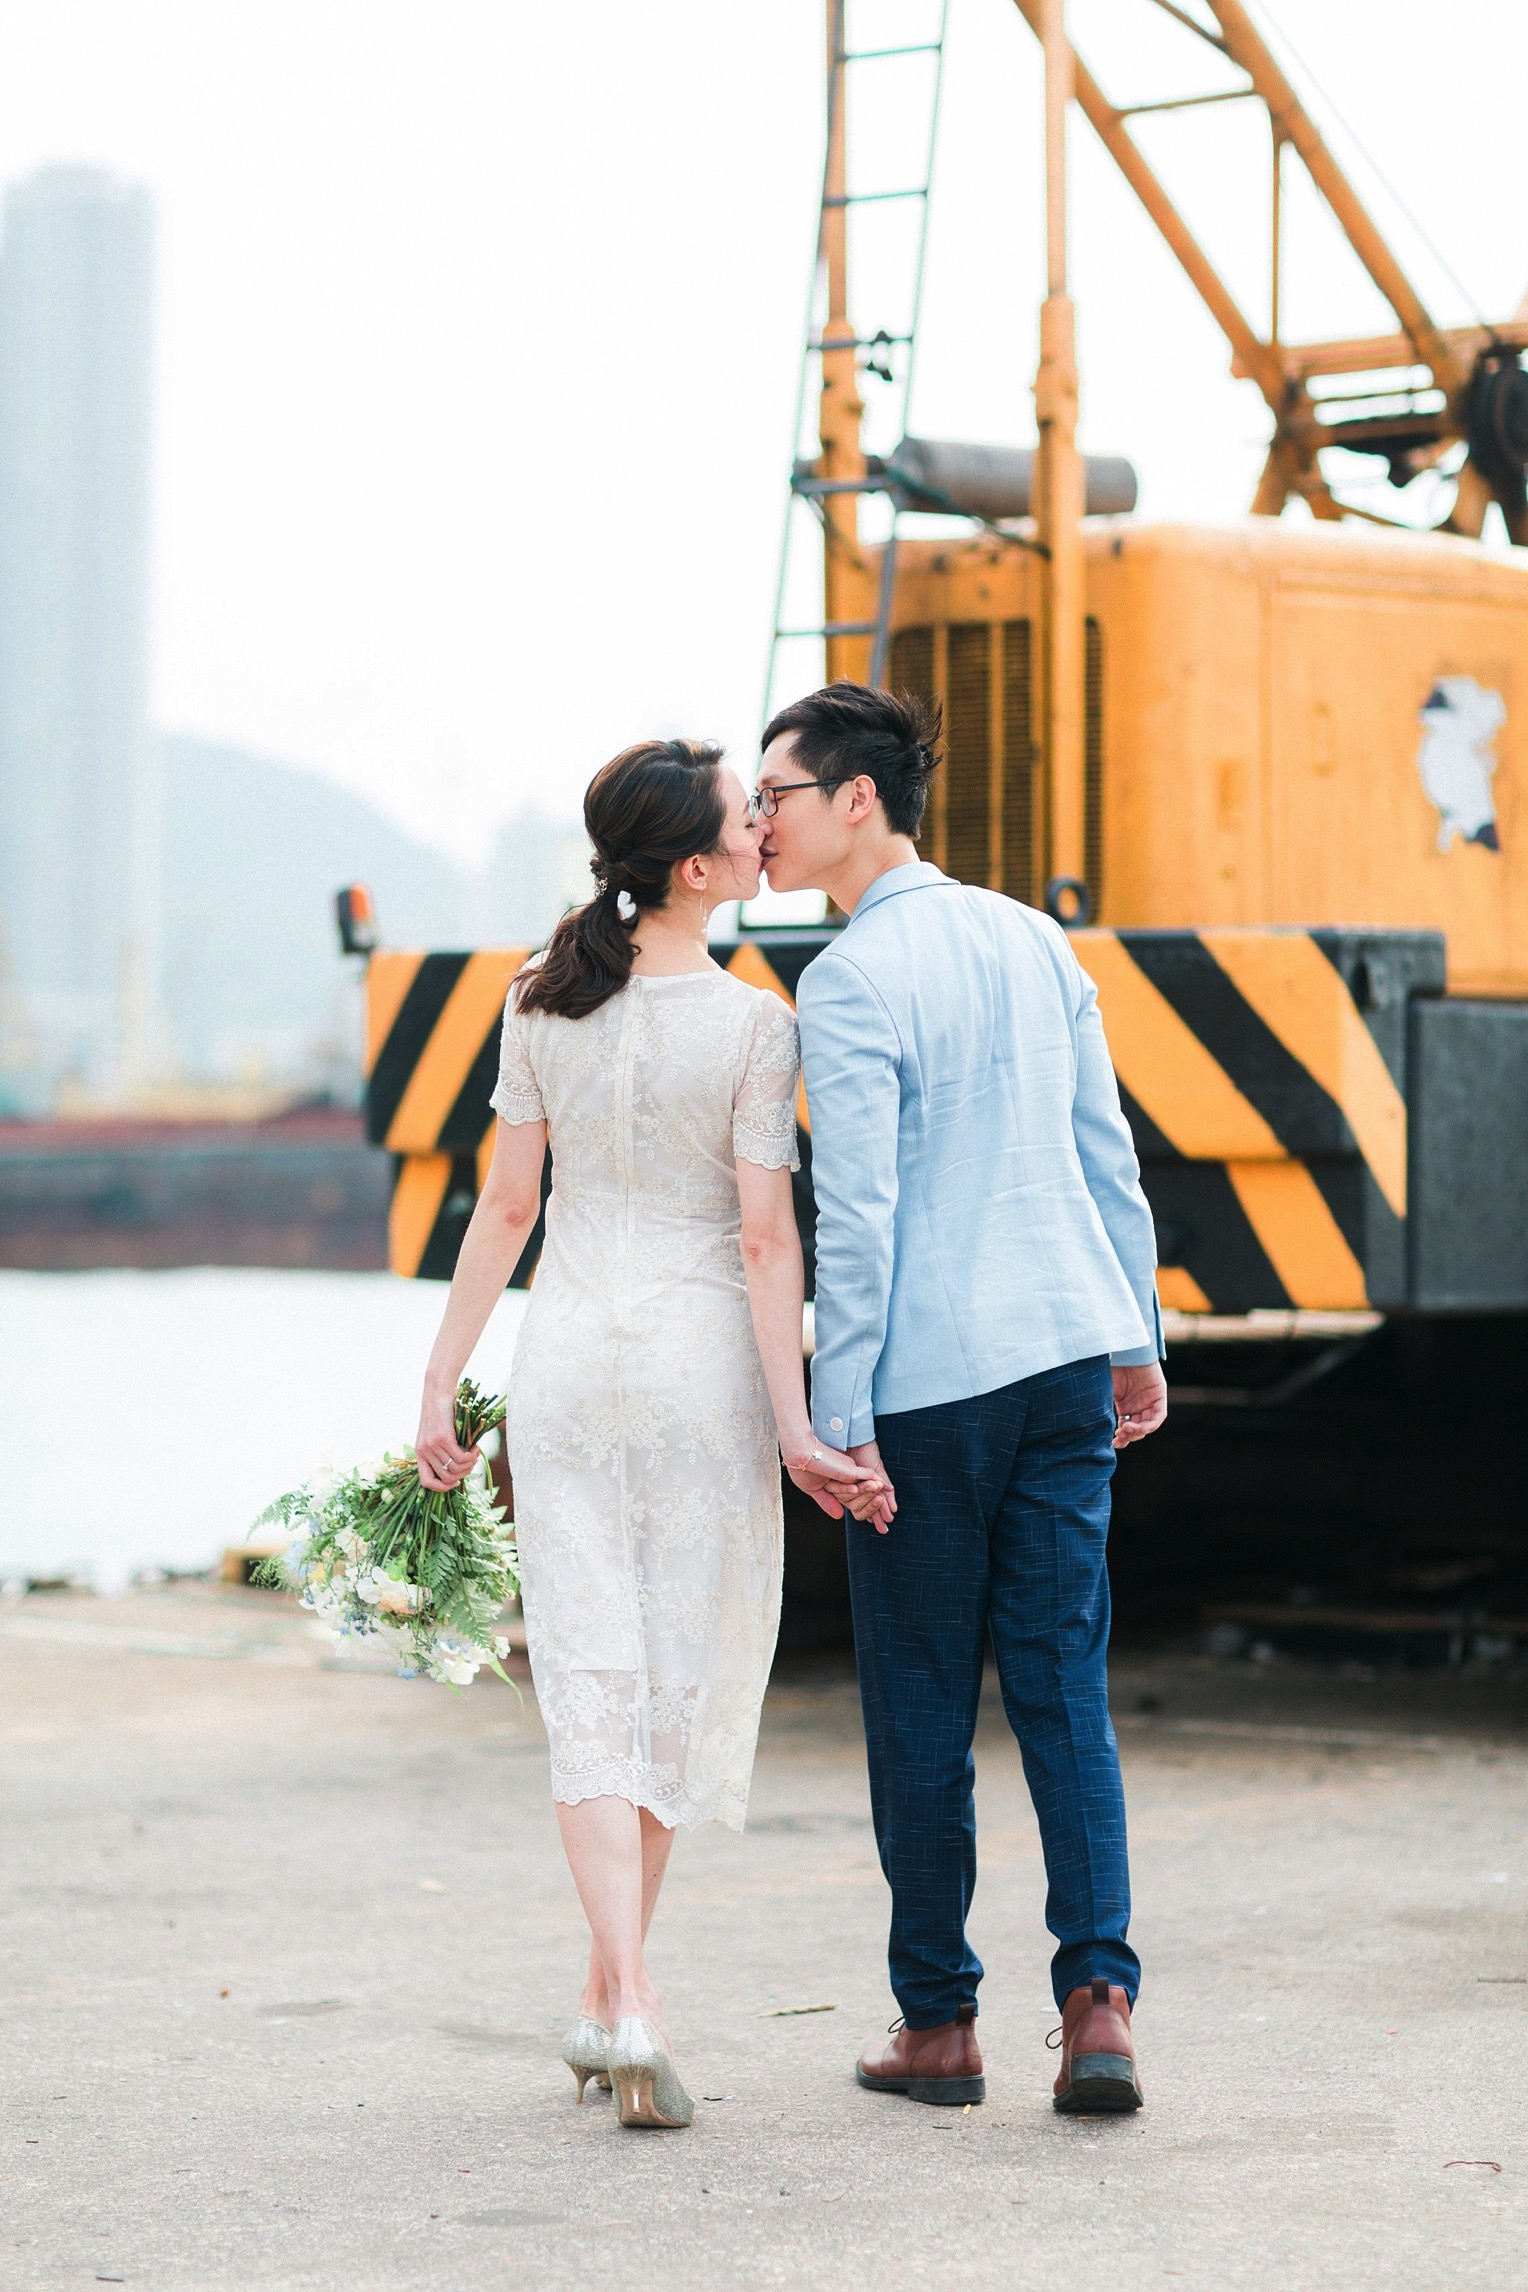 French Grey Photography Hong Kong Prewedding160